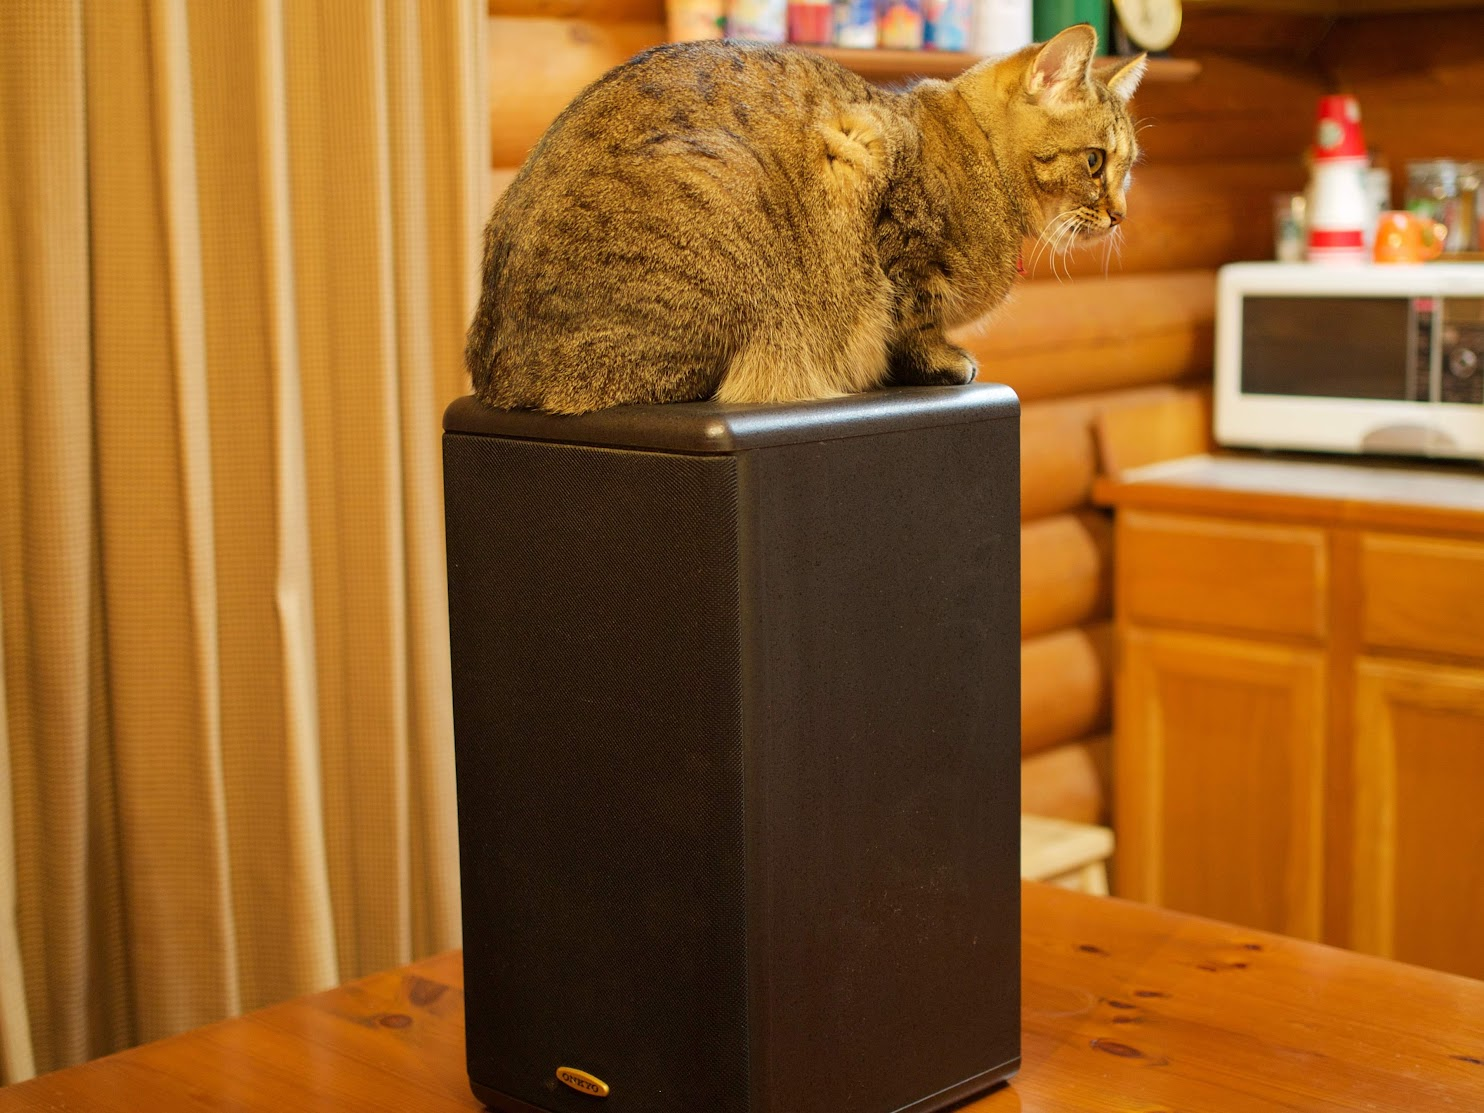 ONKYO D-303 and Cat ISON